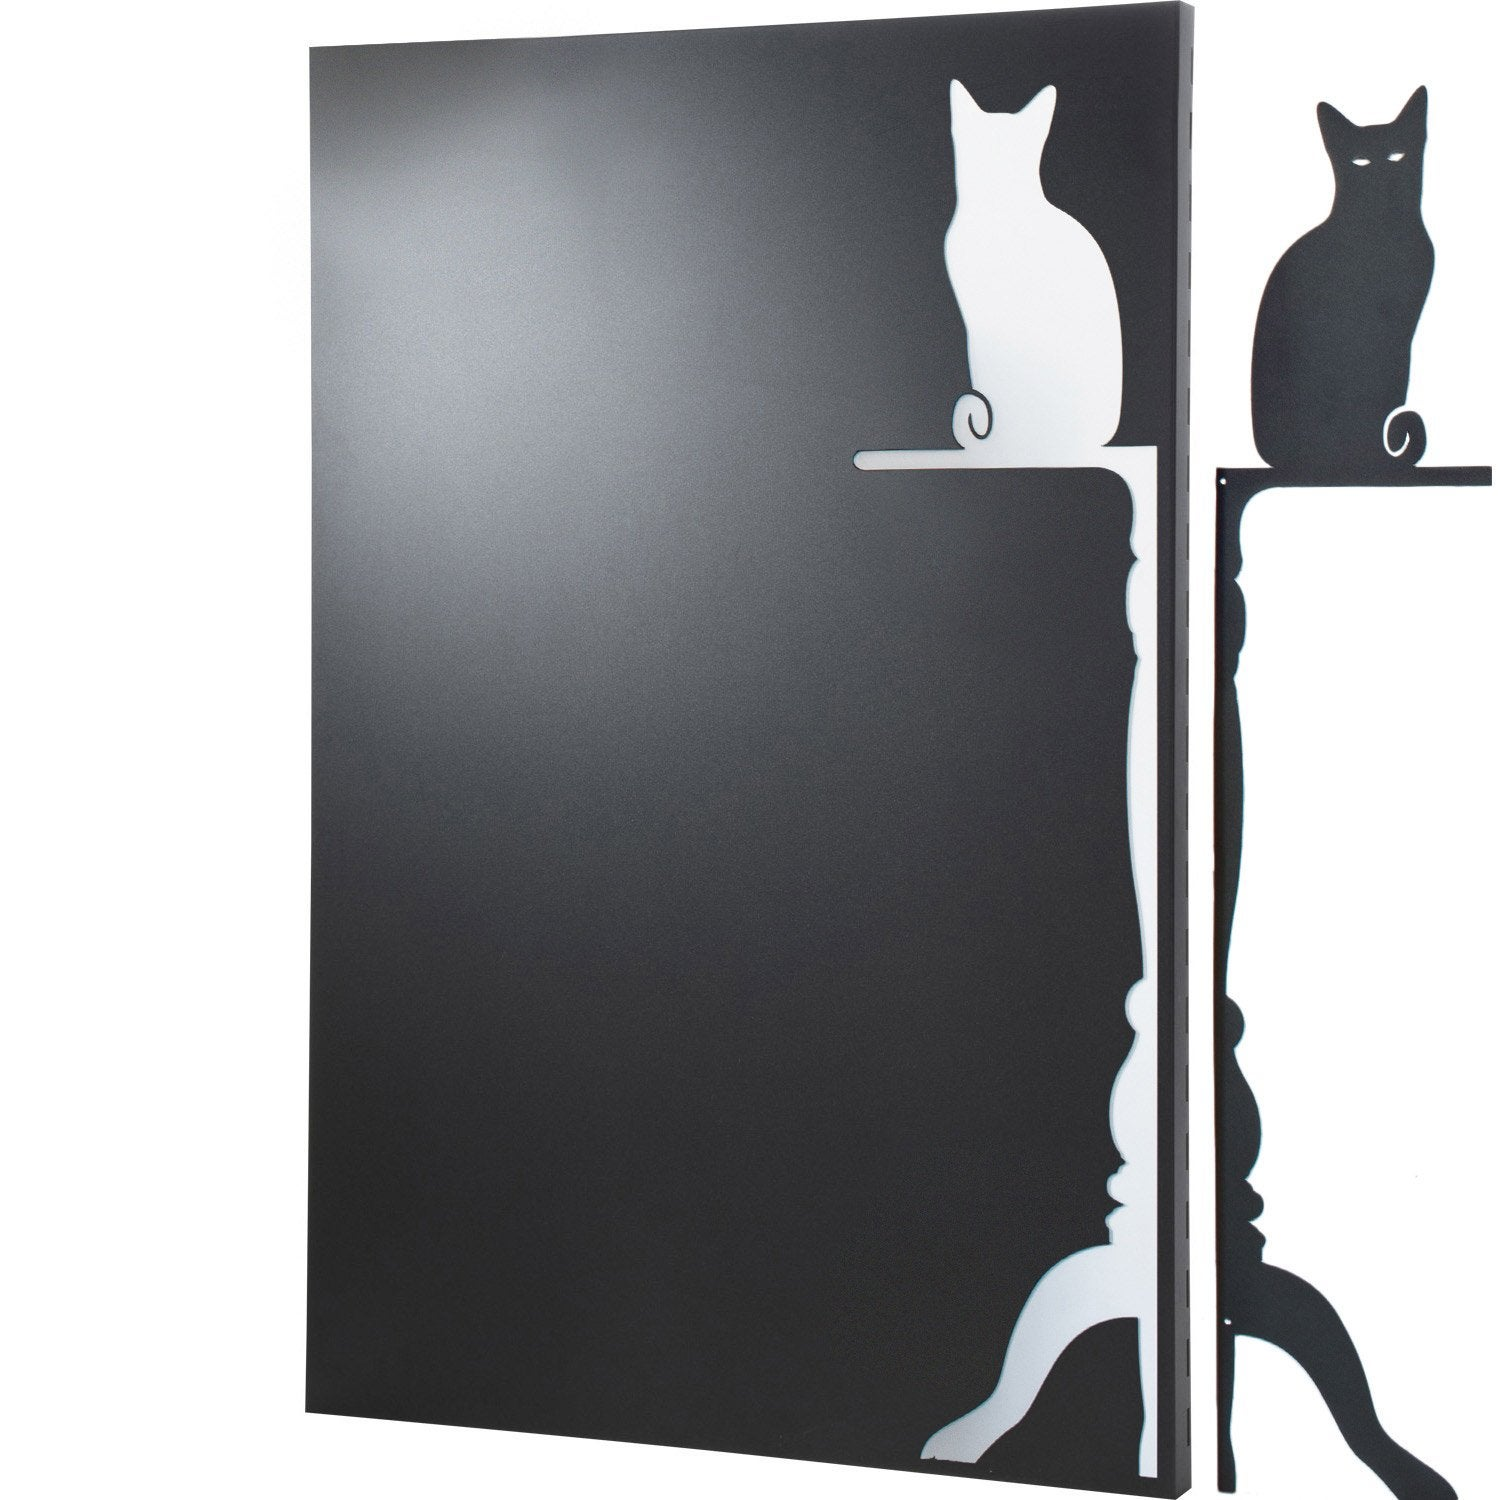 plaque de protection murale equation katy x cm. Black Bedroom Furniture Sets. Home Design Ideas